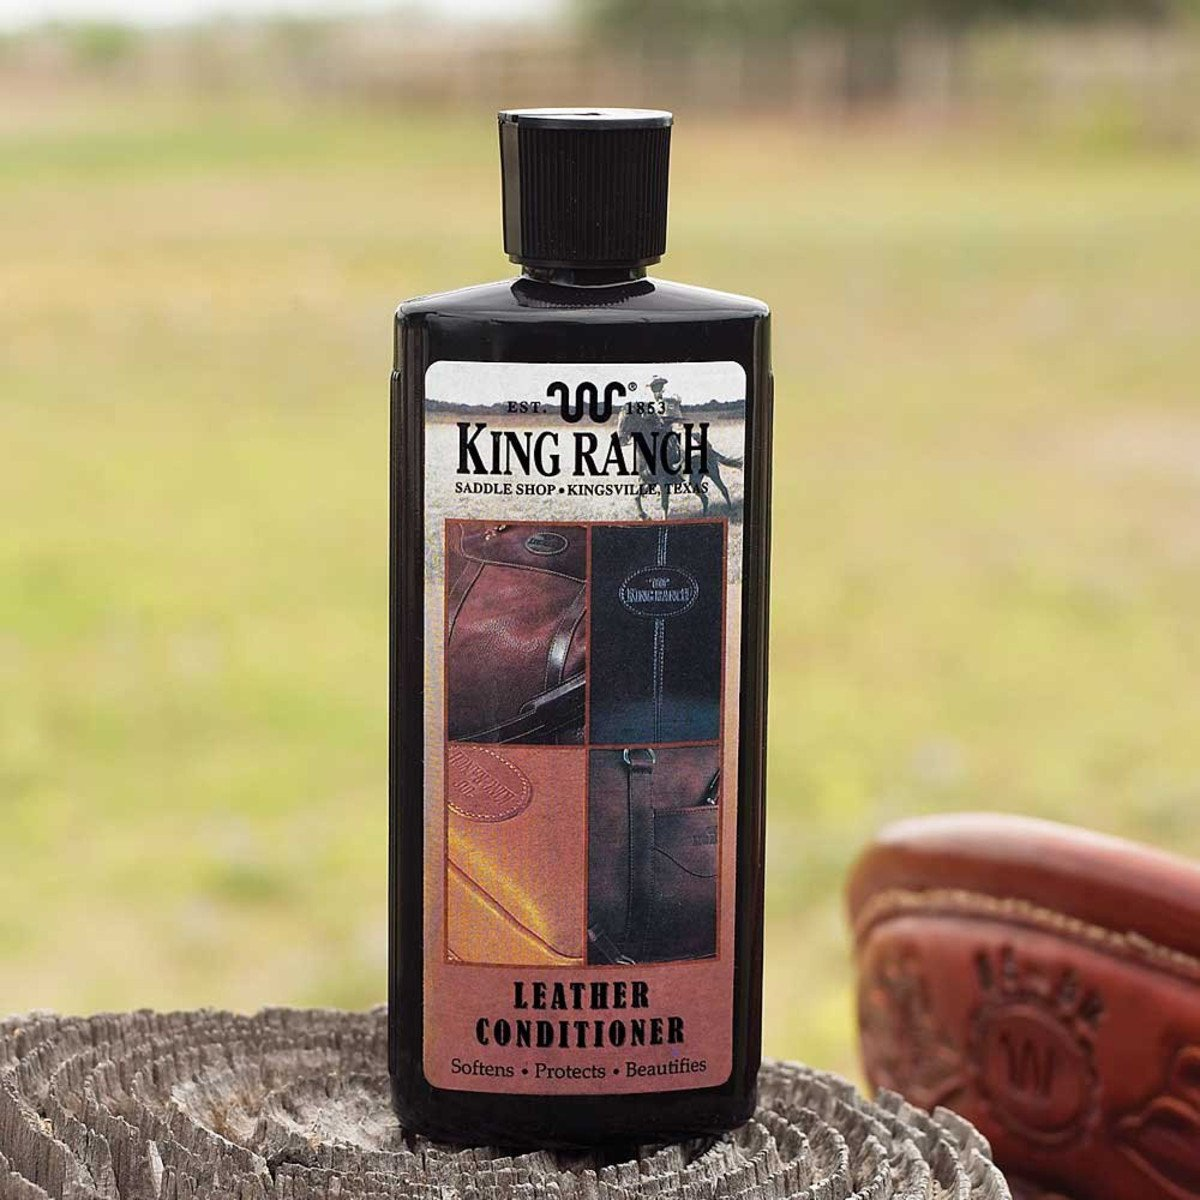 King Ranch Leather Conditioner 4332947344